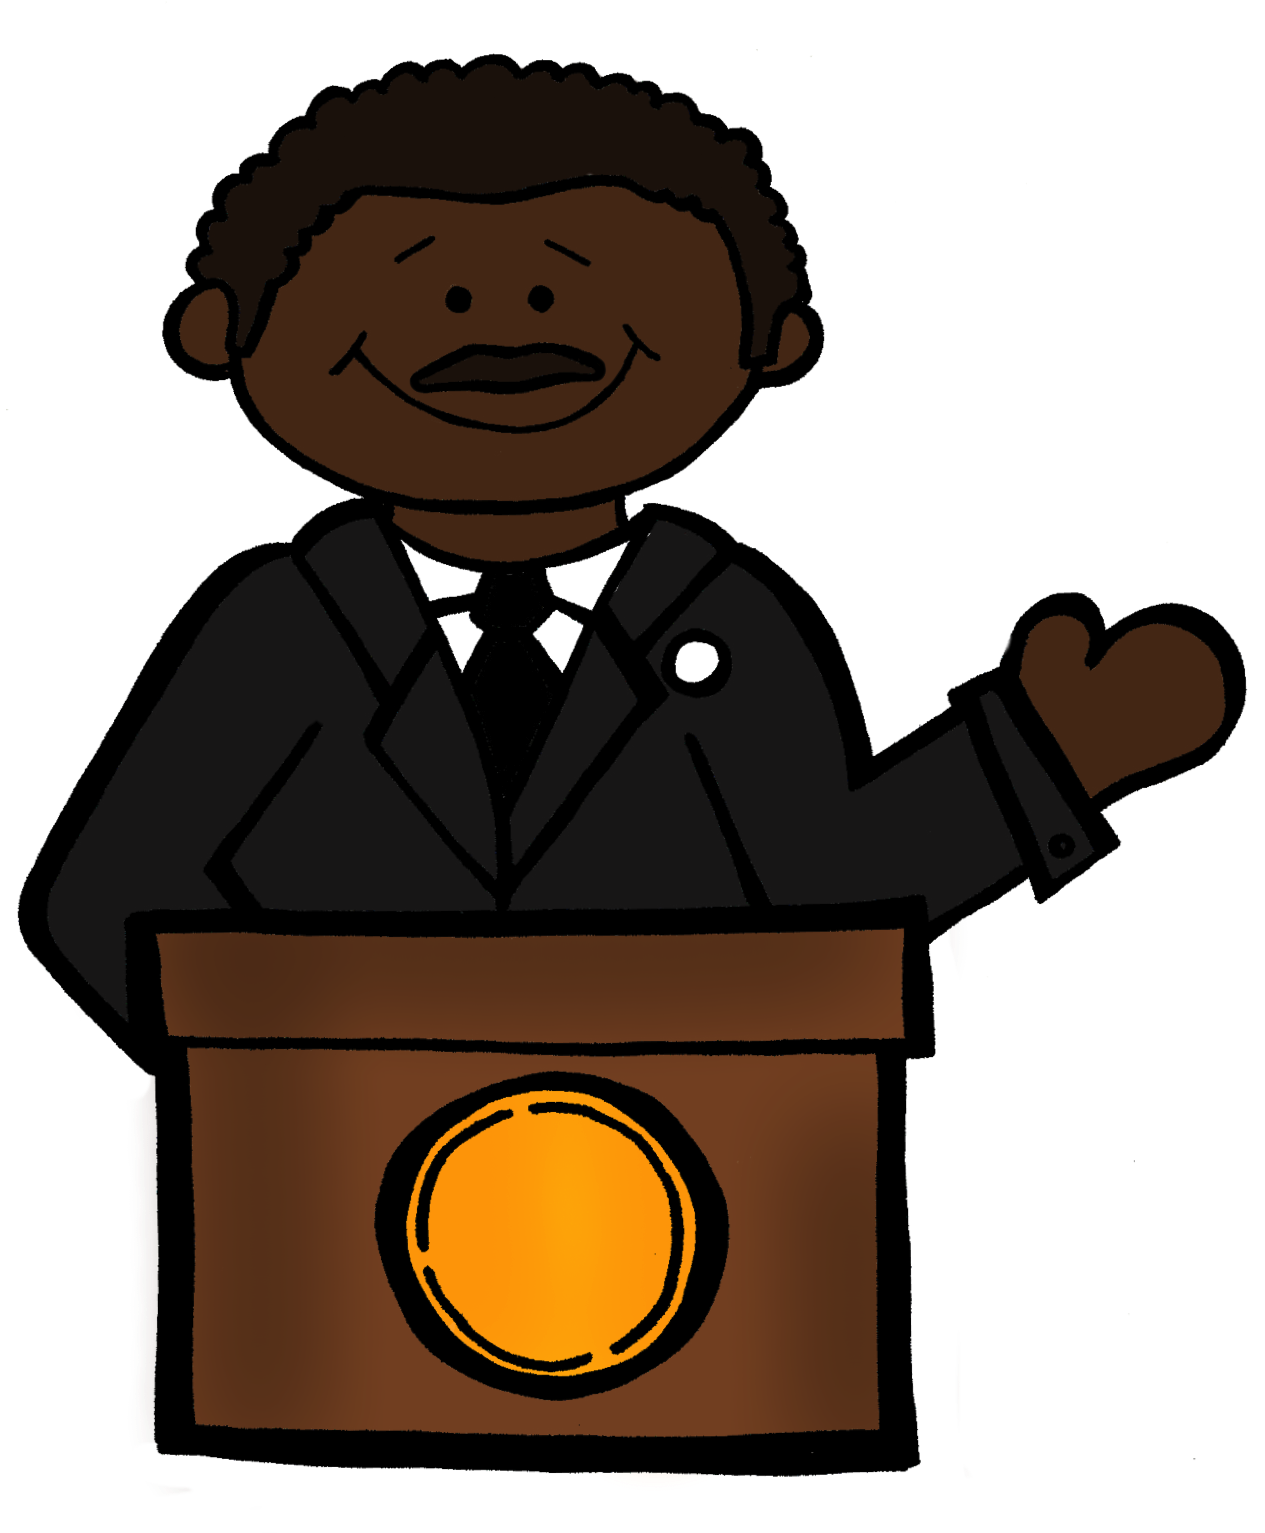 dr martin luther king clipart at getdrawings com free for personal rh getdrawings com mlk clip art images mlk clip art for kids